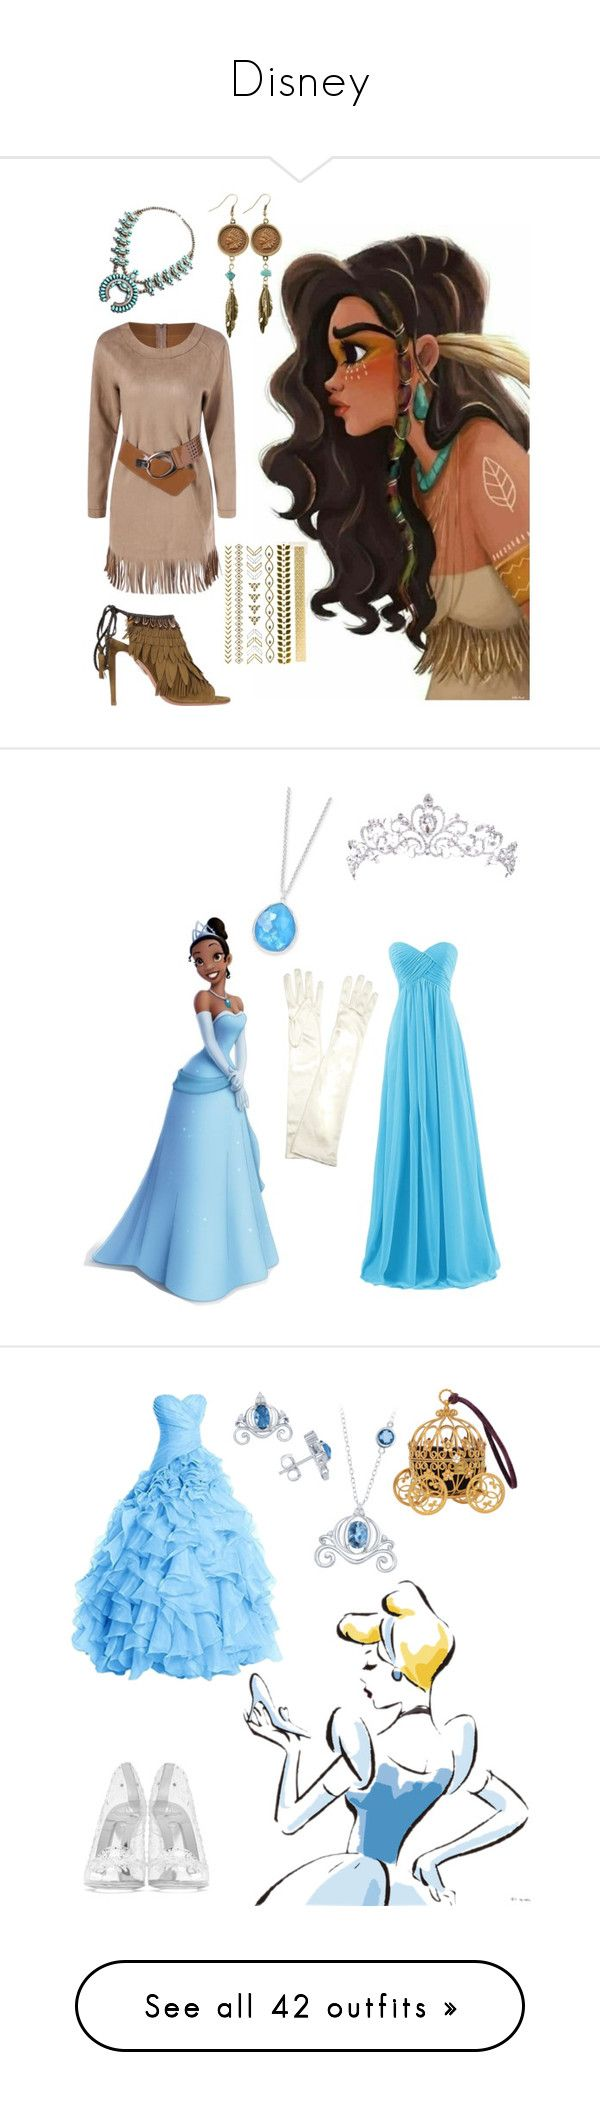 """""""Disney"""" by gryffindormermaid ❤ liked on Polyvore featuring Disney, Aquazzura, American Coin Treasures, Printed Village, John Lewis, CO, Ippolita, Dolce&Gabbana, Aquatalia by Marvin K. and Forte Forte"""